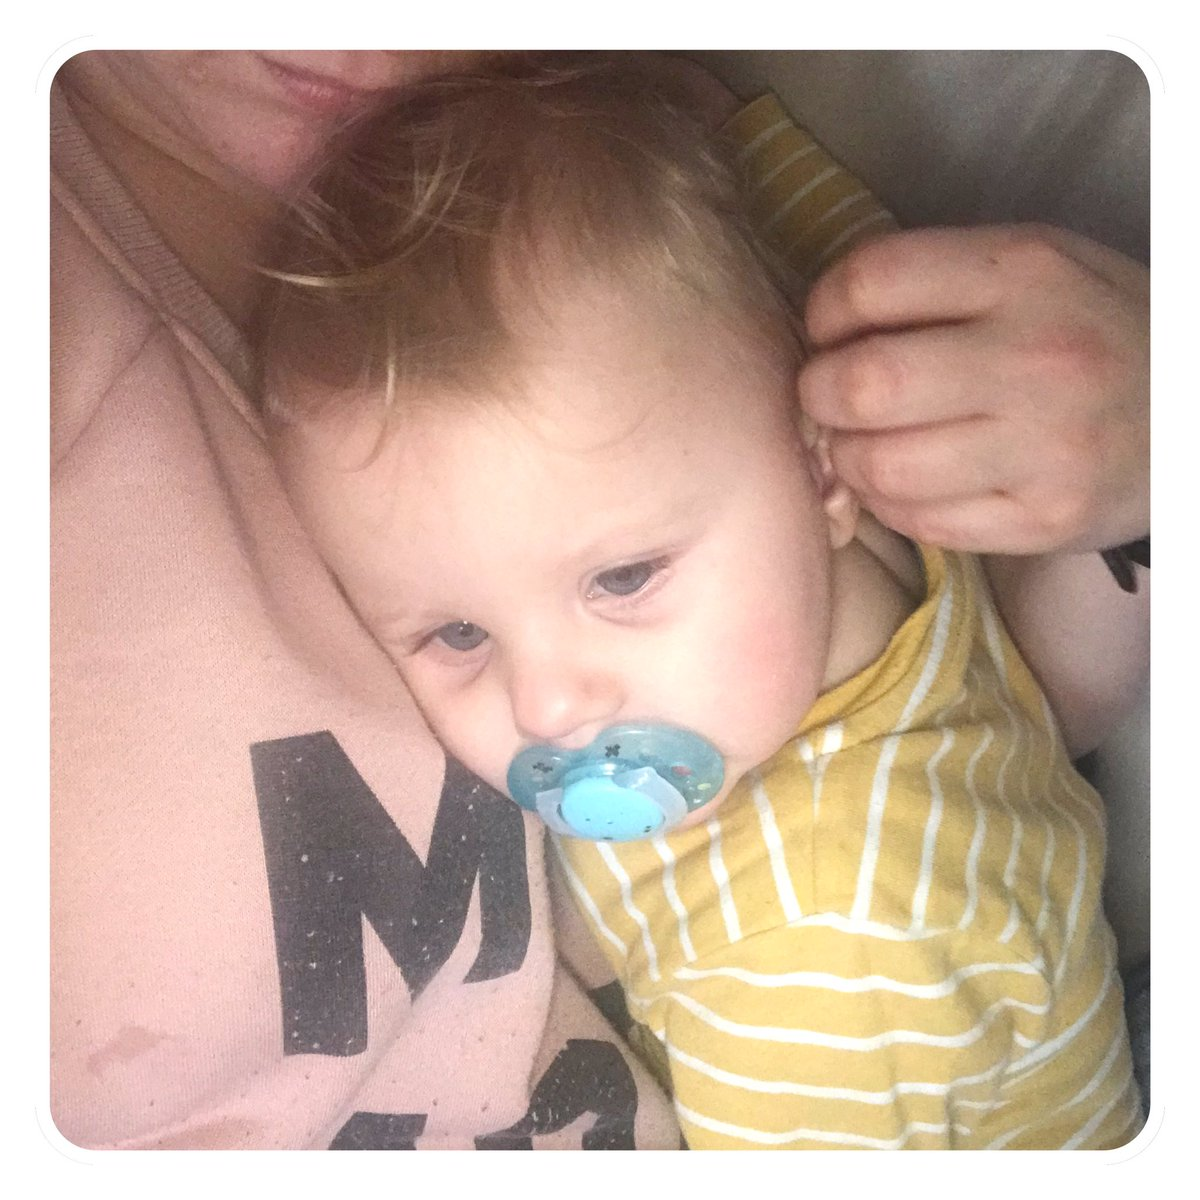 This one is still poorly 😢 He's slowly starting to get better but these past 2 weeks have been so hard as he's been clingy as hell 😢 #poorlybaby #breastfeedingmom